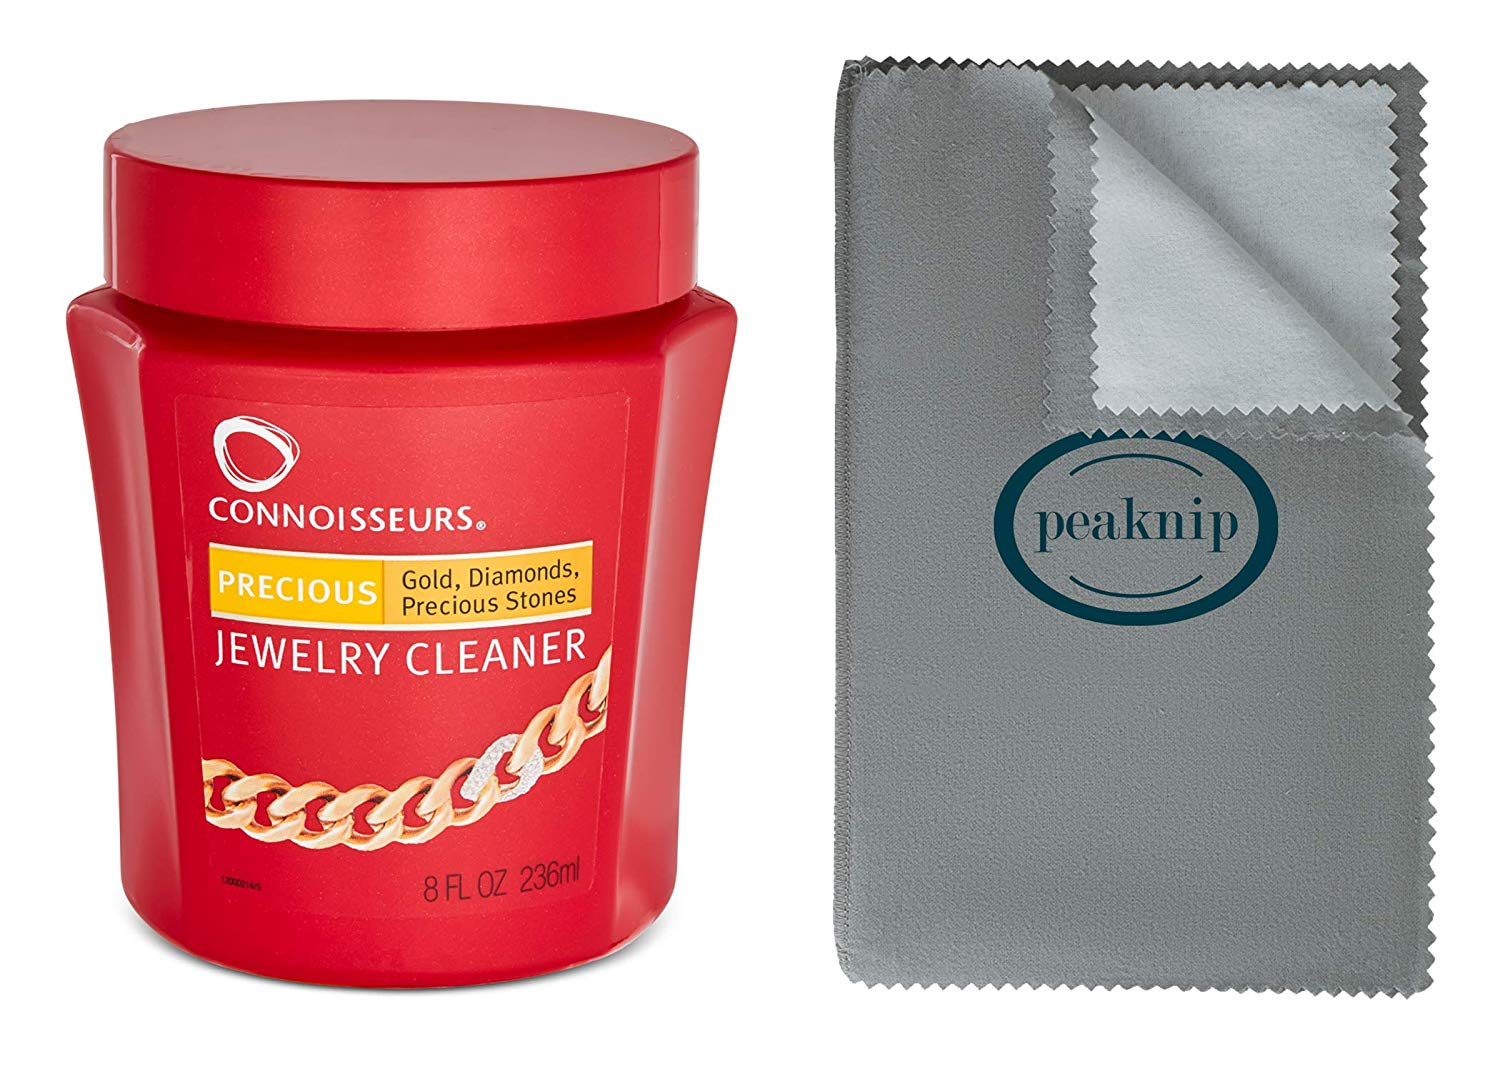 connosisseurs_jewelry_cleaner